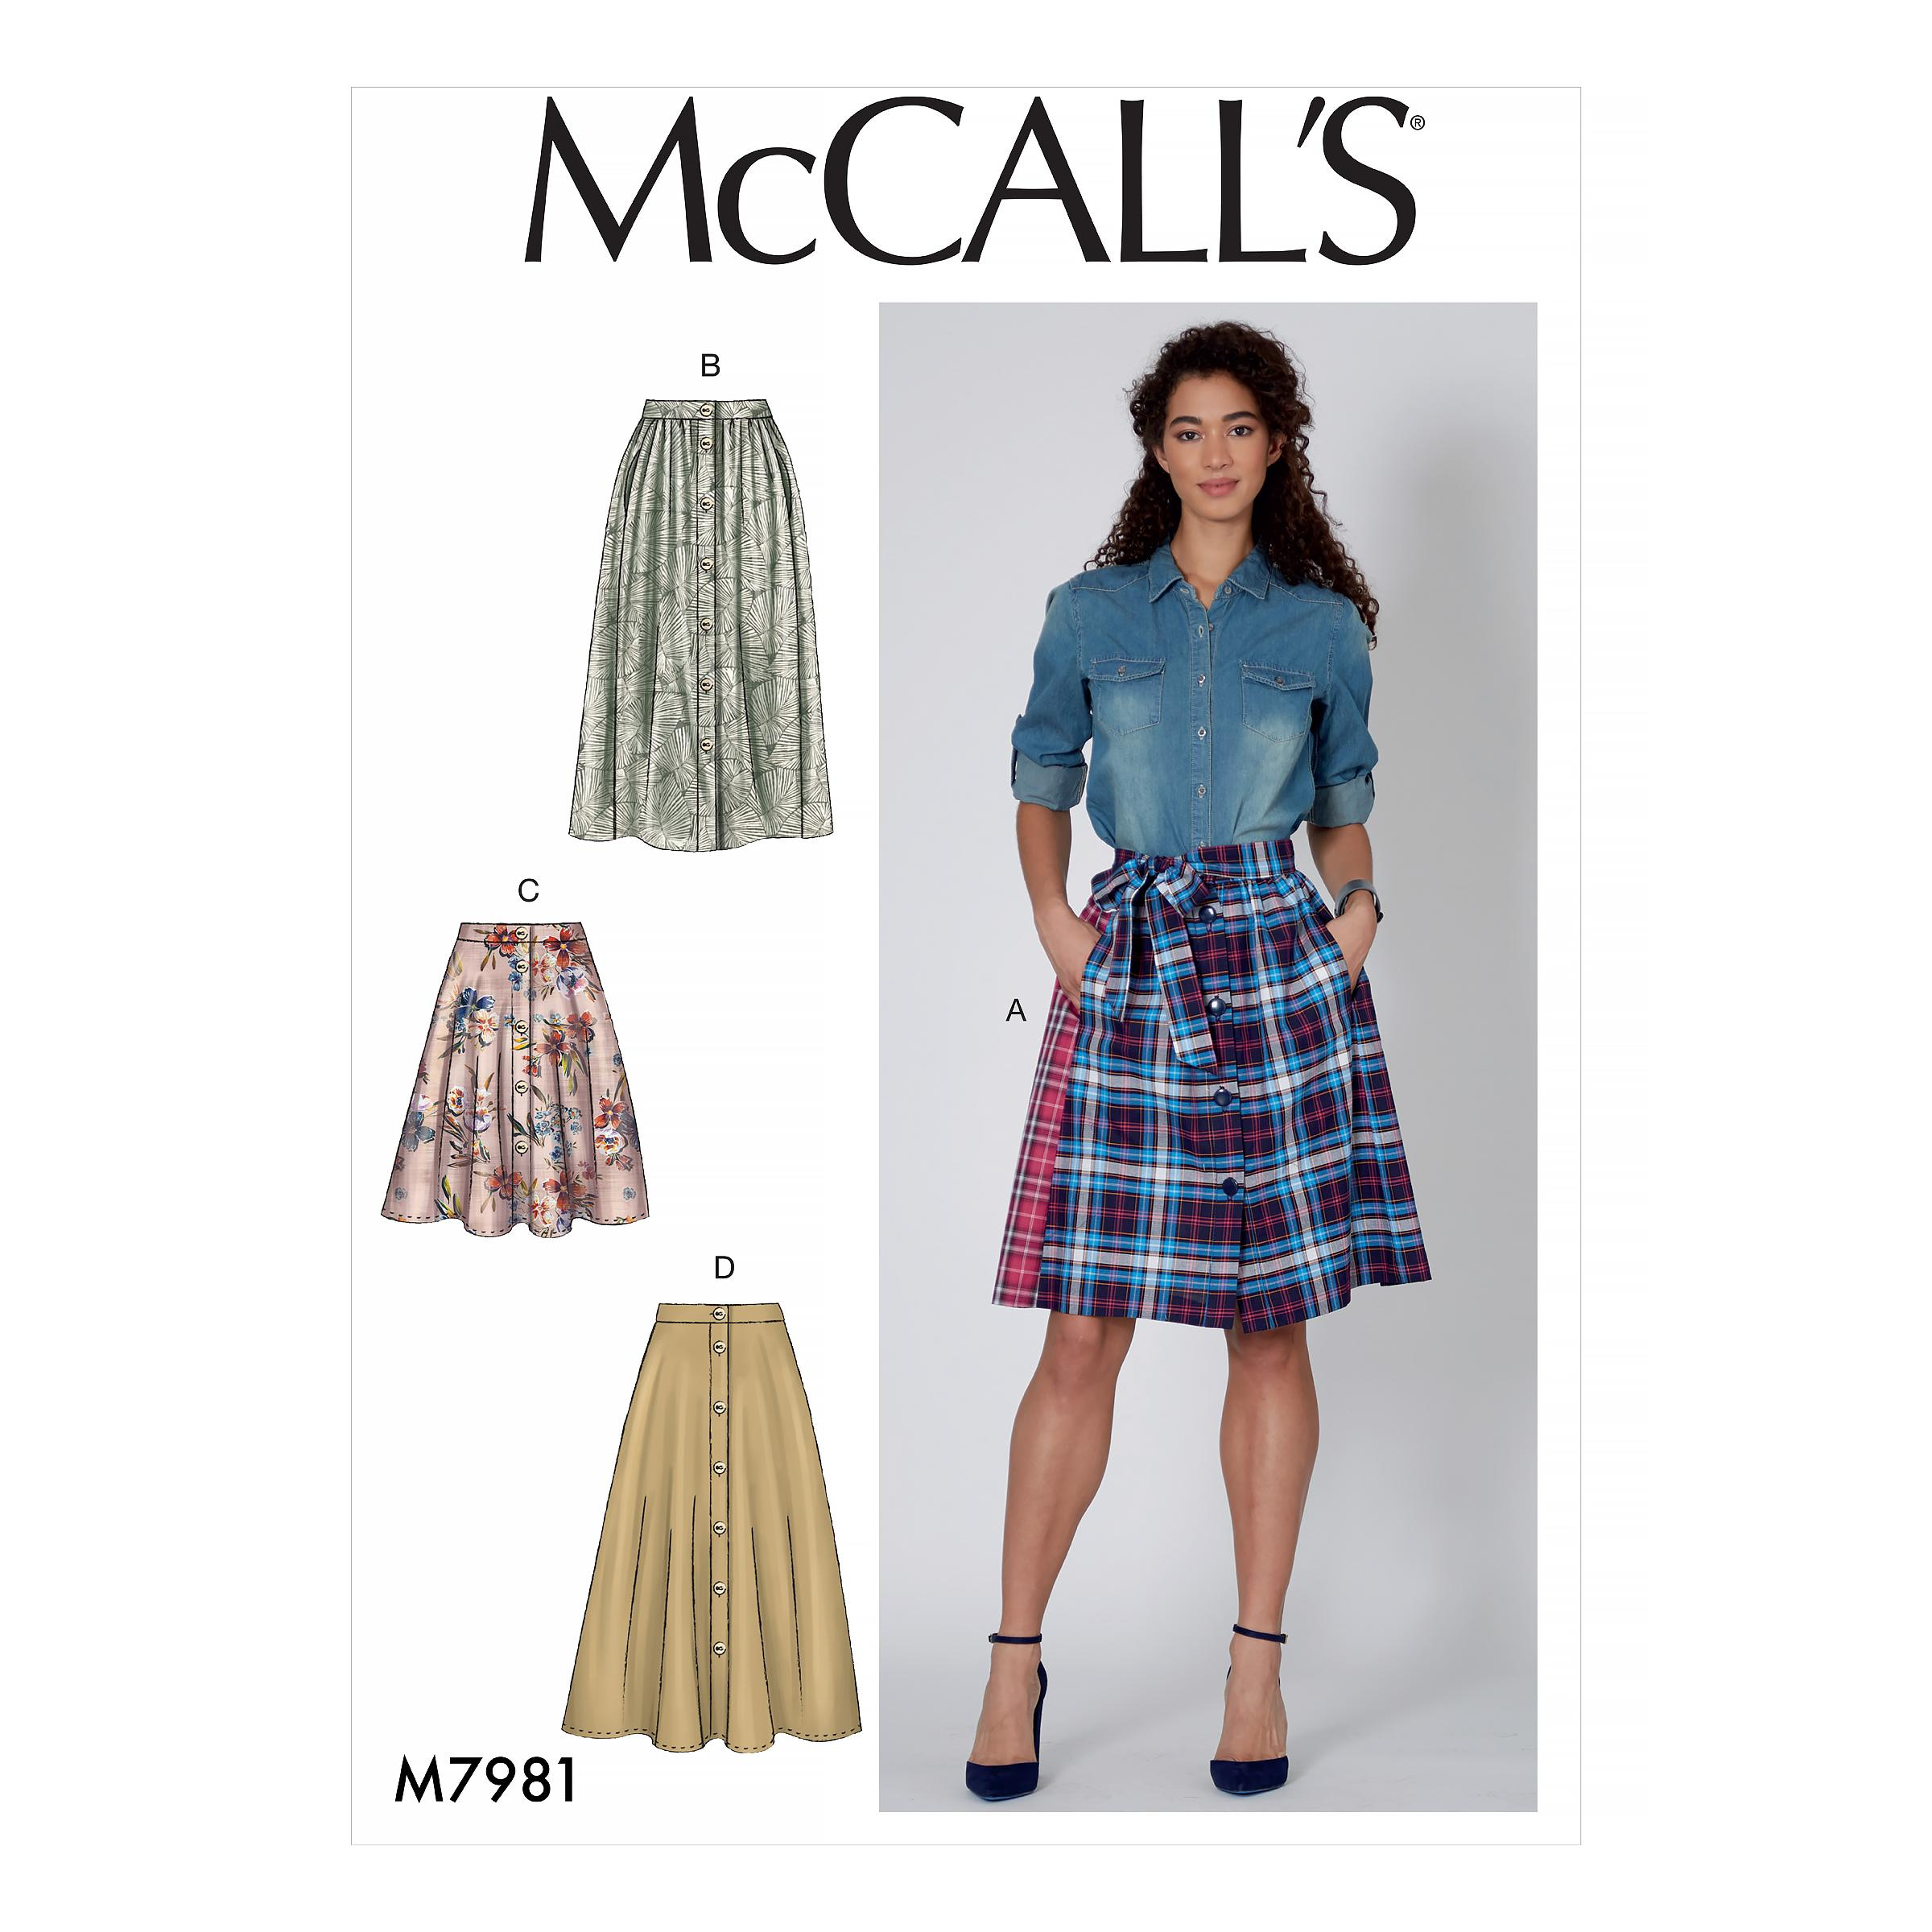 McCalls M7981 Misses Skirts